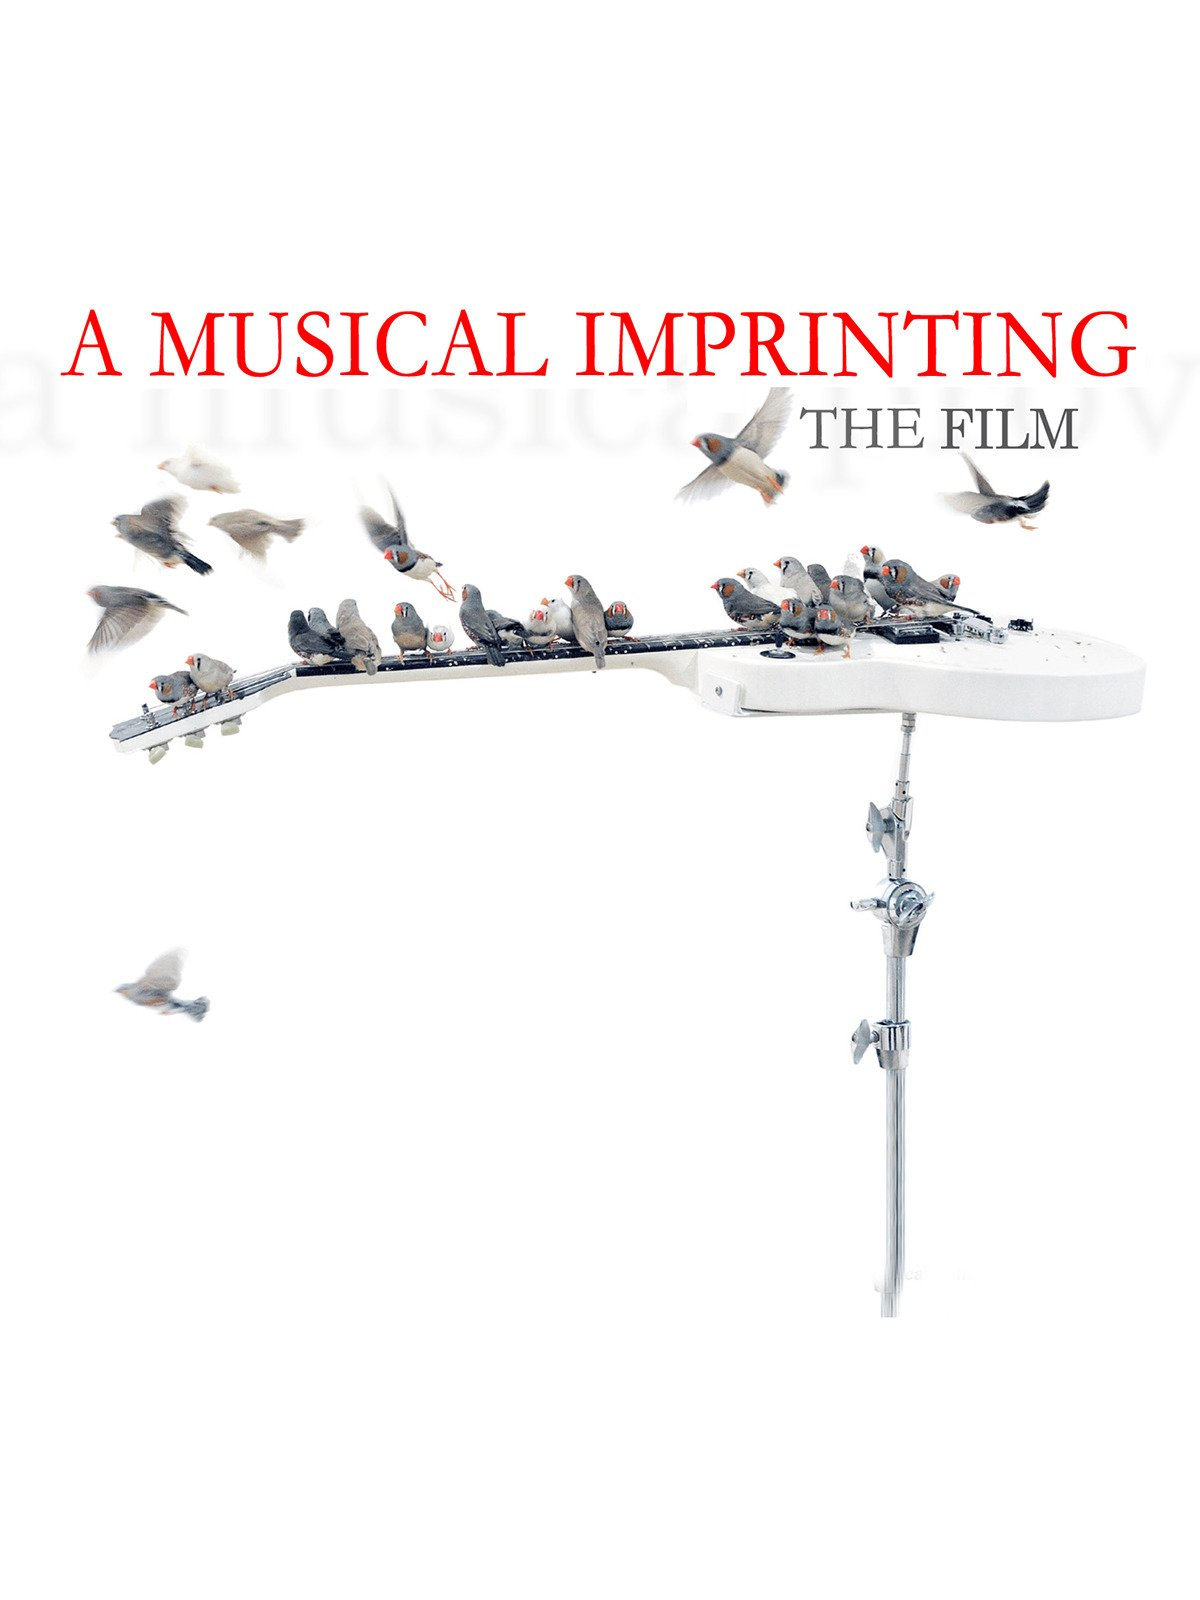 A Musical Imprinting